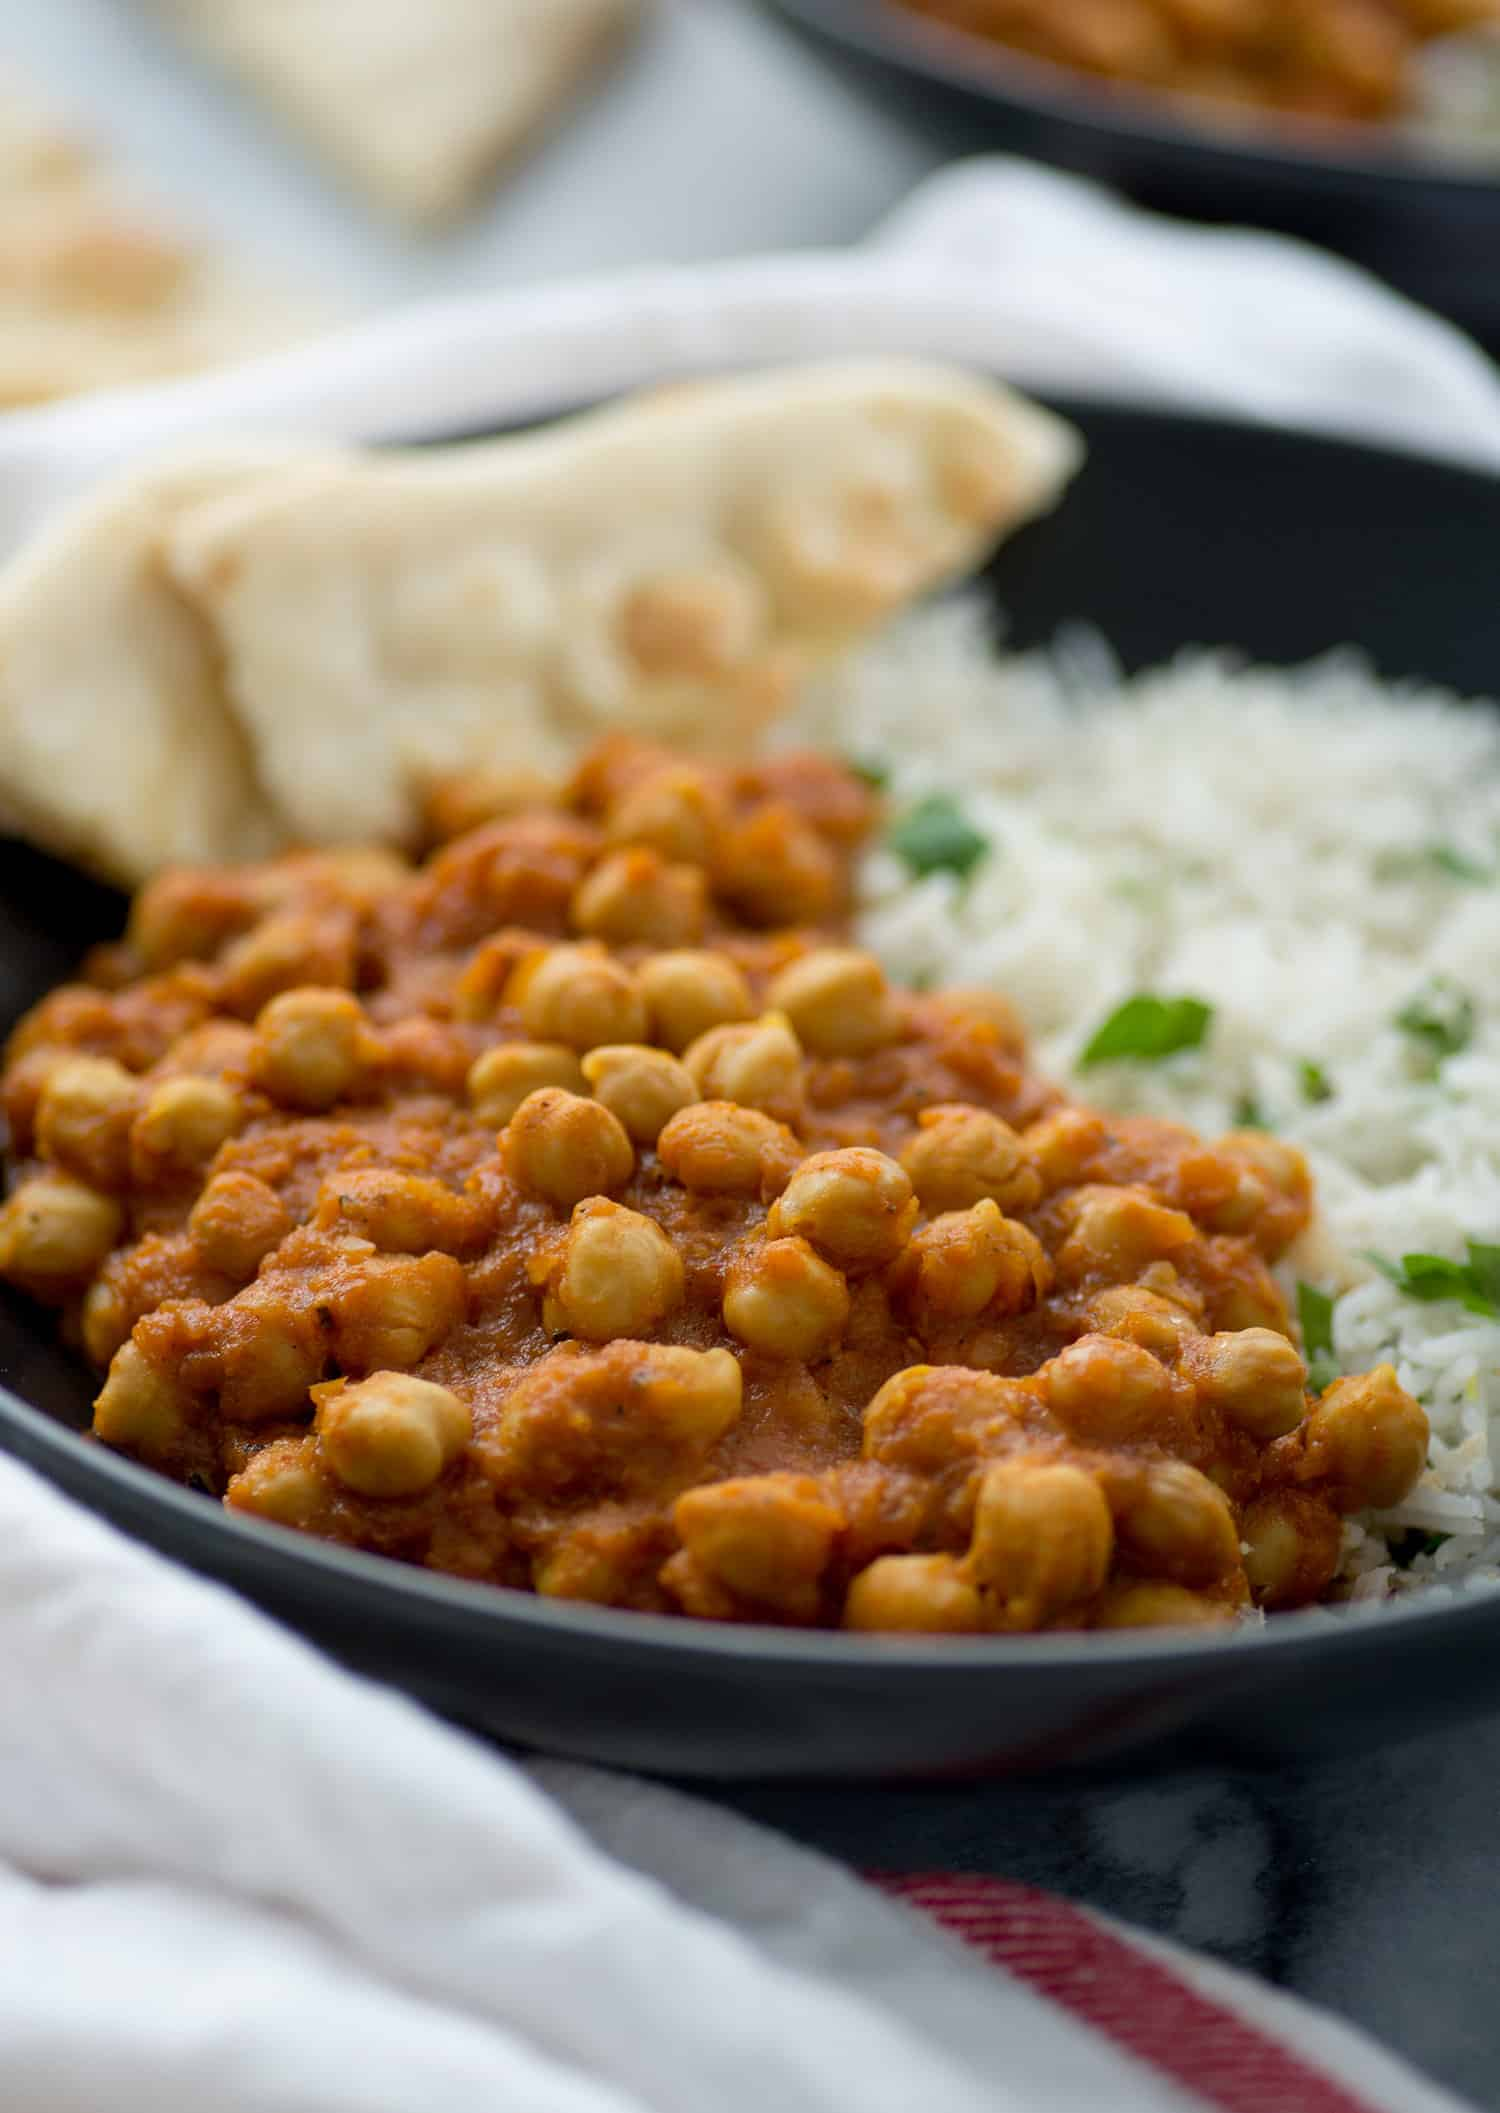 Vegan slow cooker chana masala video delish knowledge slow cooker vegan chana masala chickpeas cooked in a fragrant spiced tomato sauce forumfinder Images